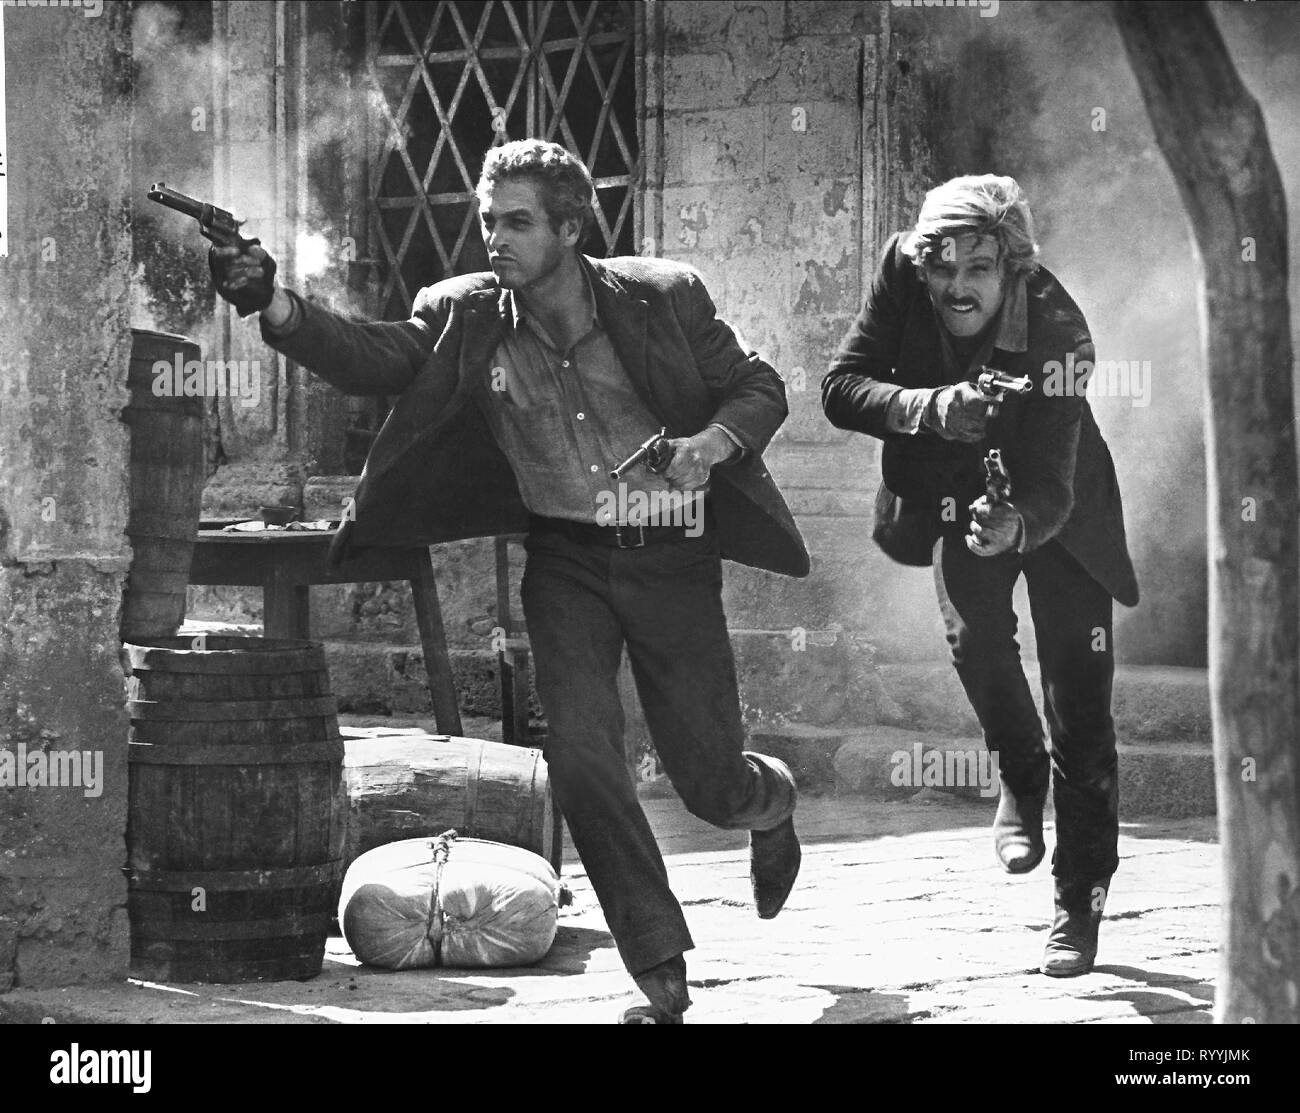 PAUL NEWMAN, ROBERT REDFORD, BUTCH CASSIDY AND THE SUNDANCE KID, 1969 - Stock Image